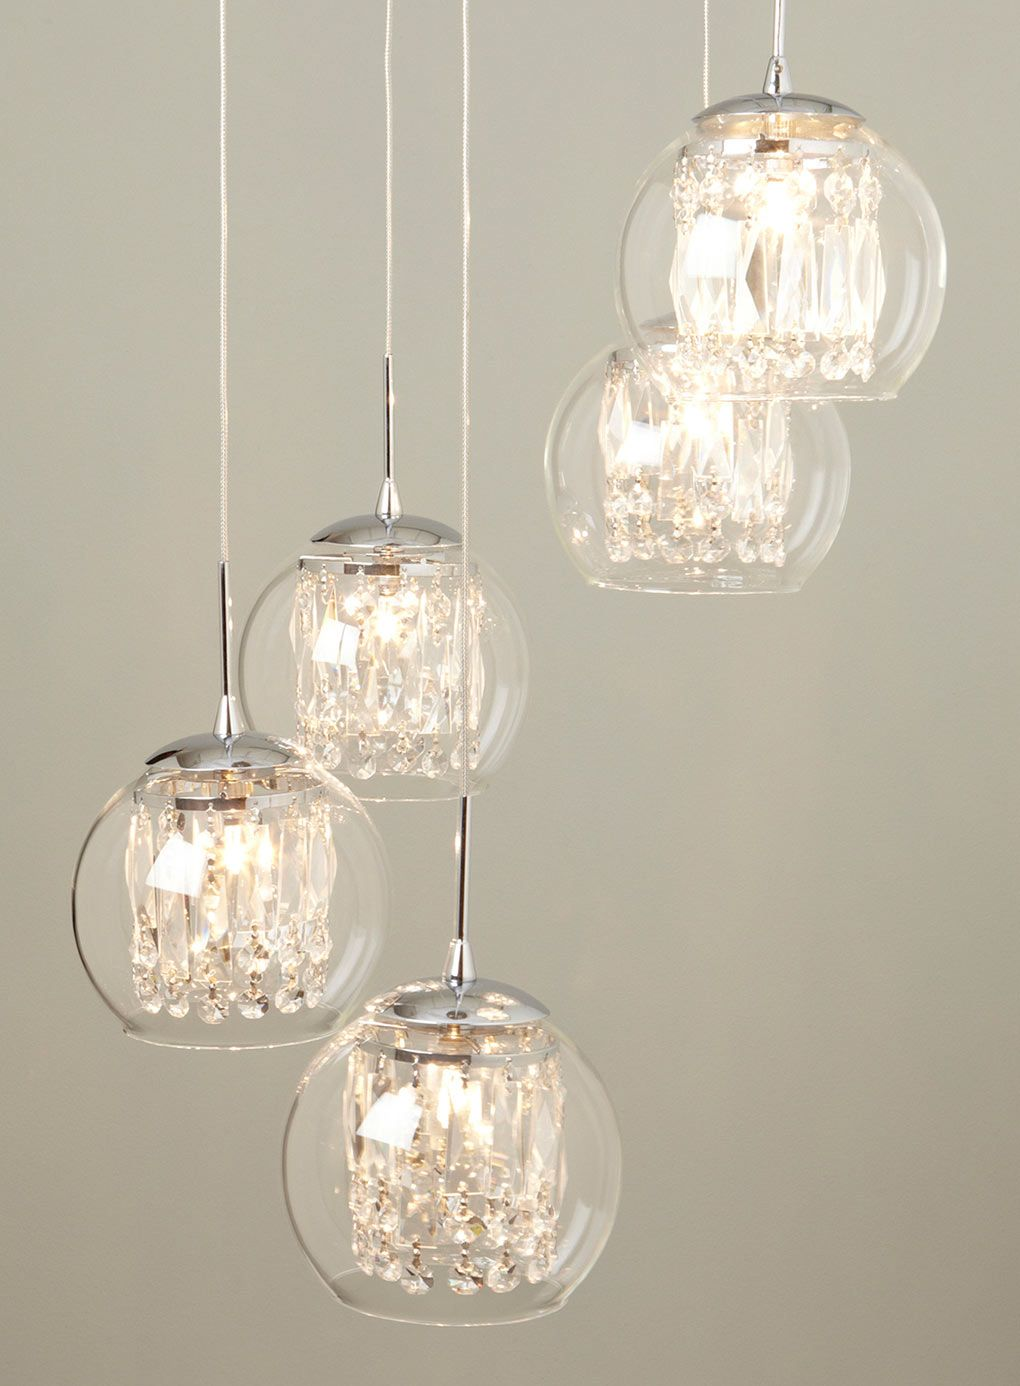 lamp globe modo product pendant free light jason chandelier miller bulbs replica